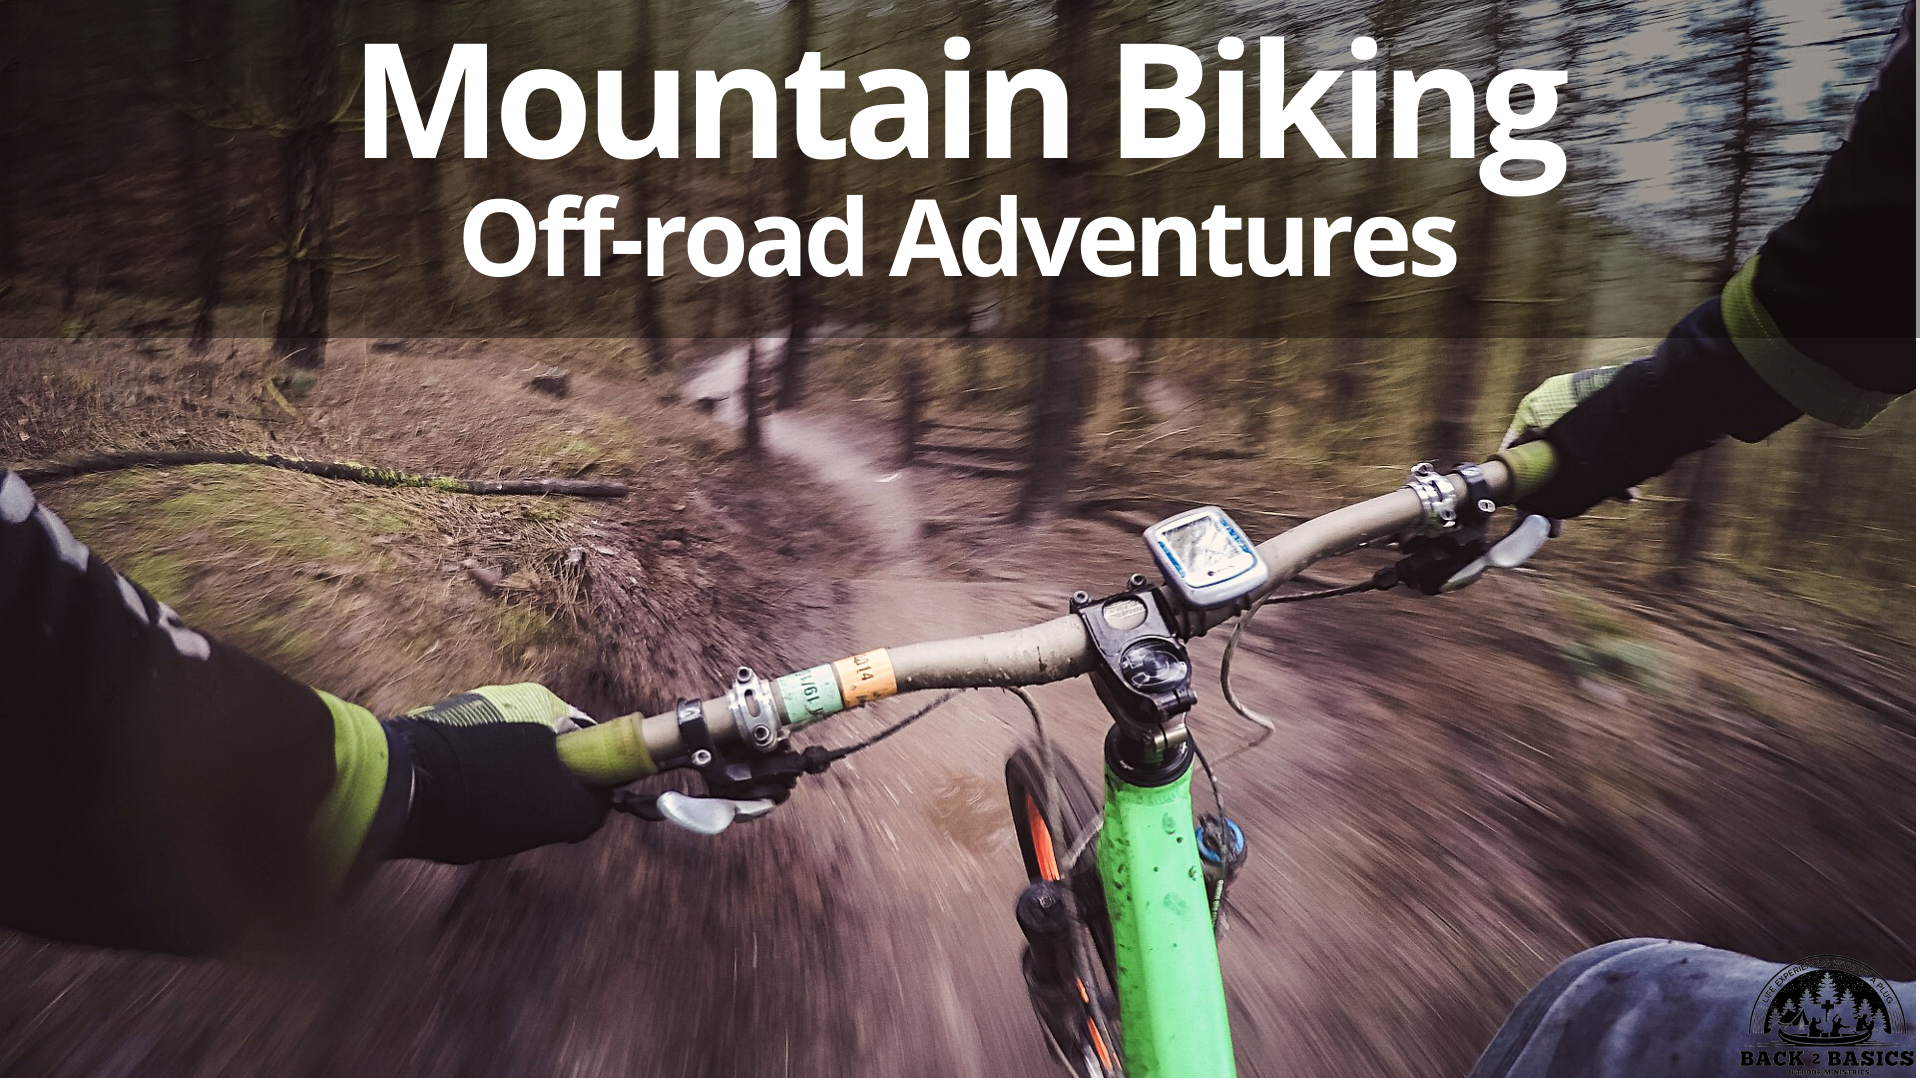 off-road mountain biking, back2basics outdoor ministries